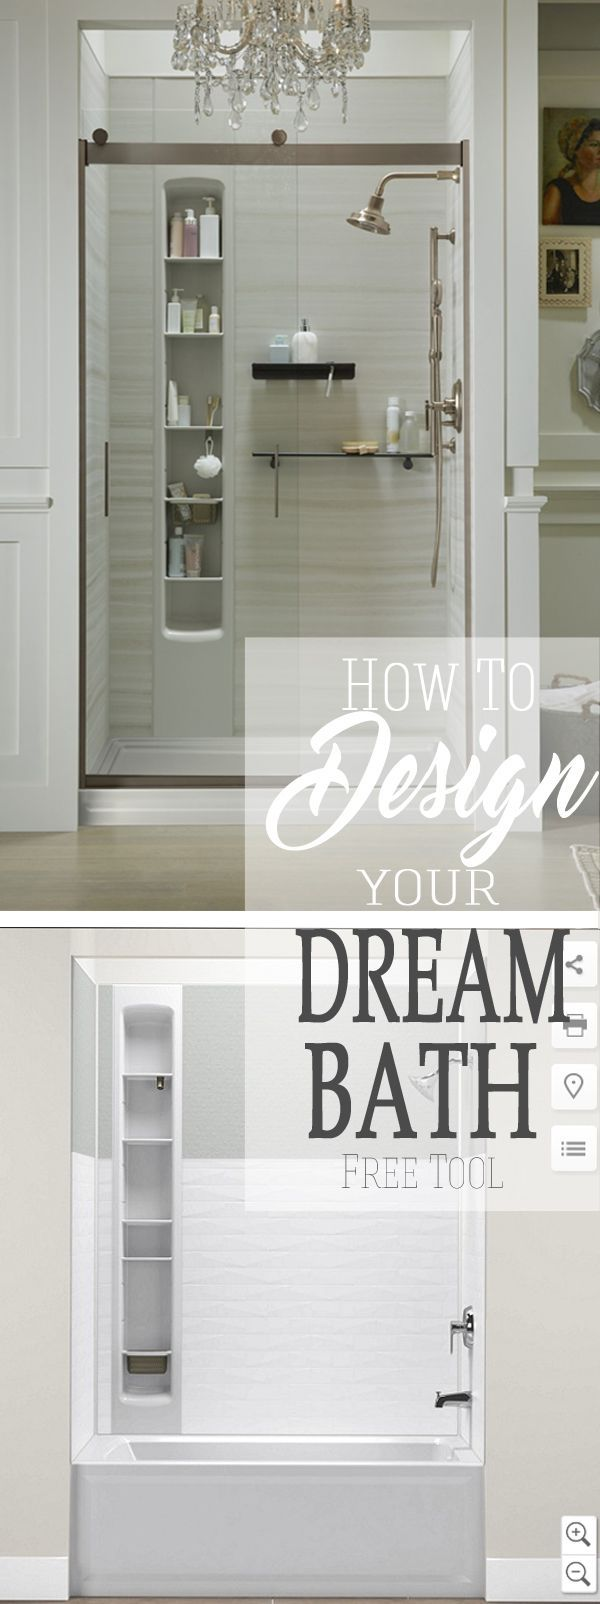 Desperate to use the bathroom - Designing A Dream Shower And Bath With Kohler Choreograph